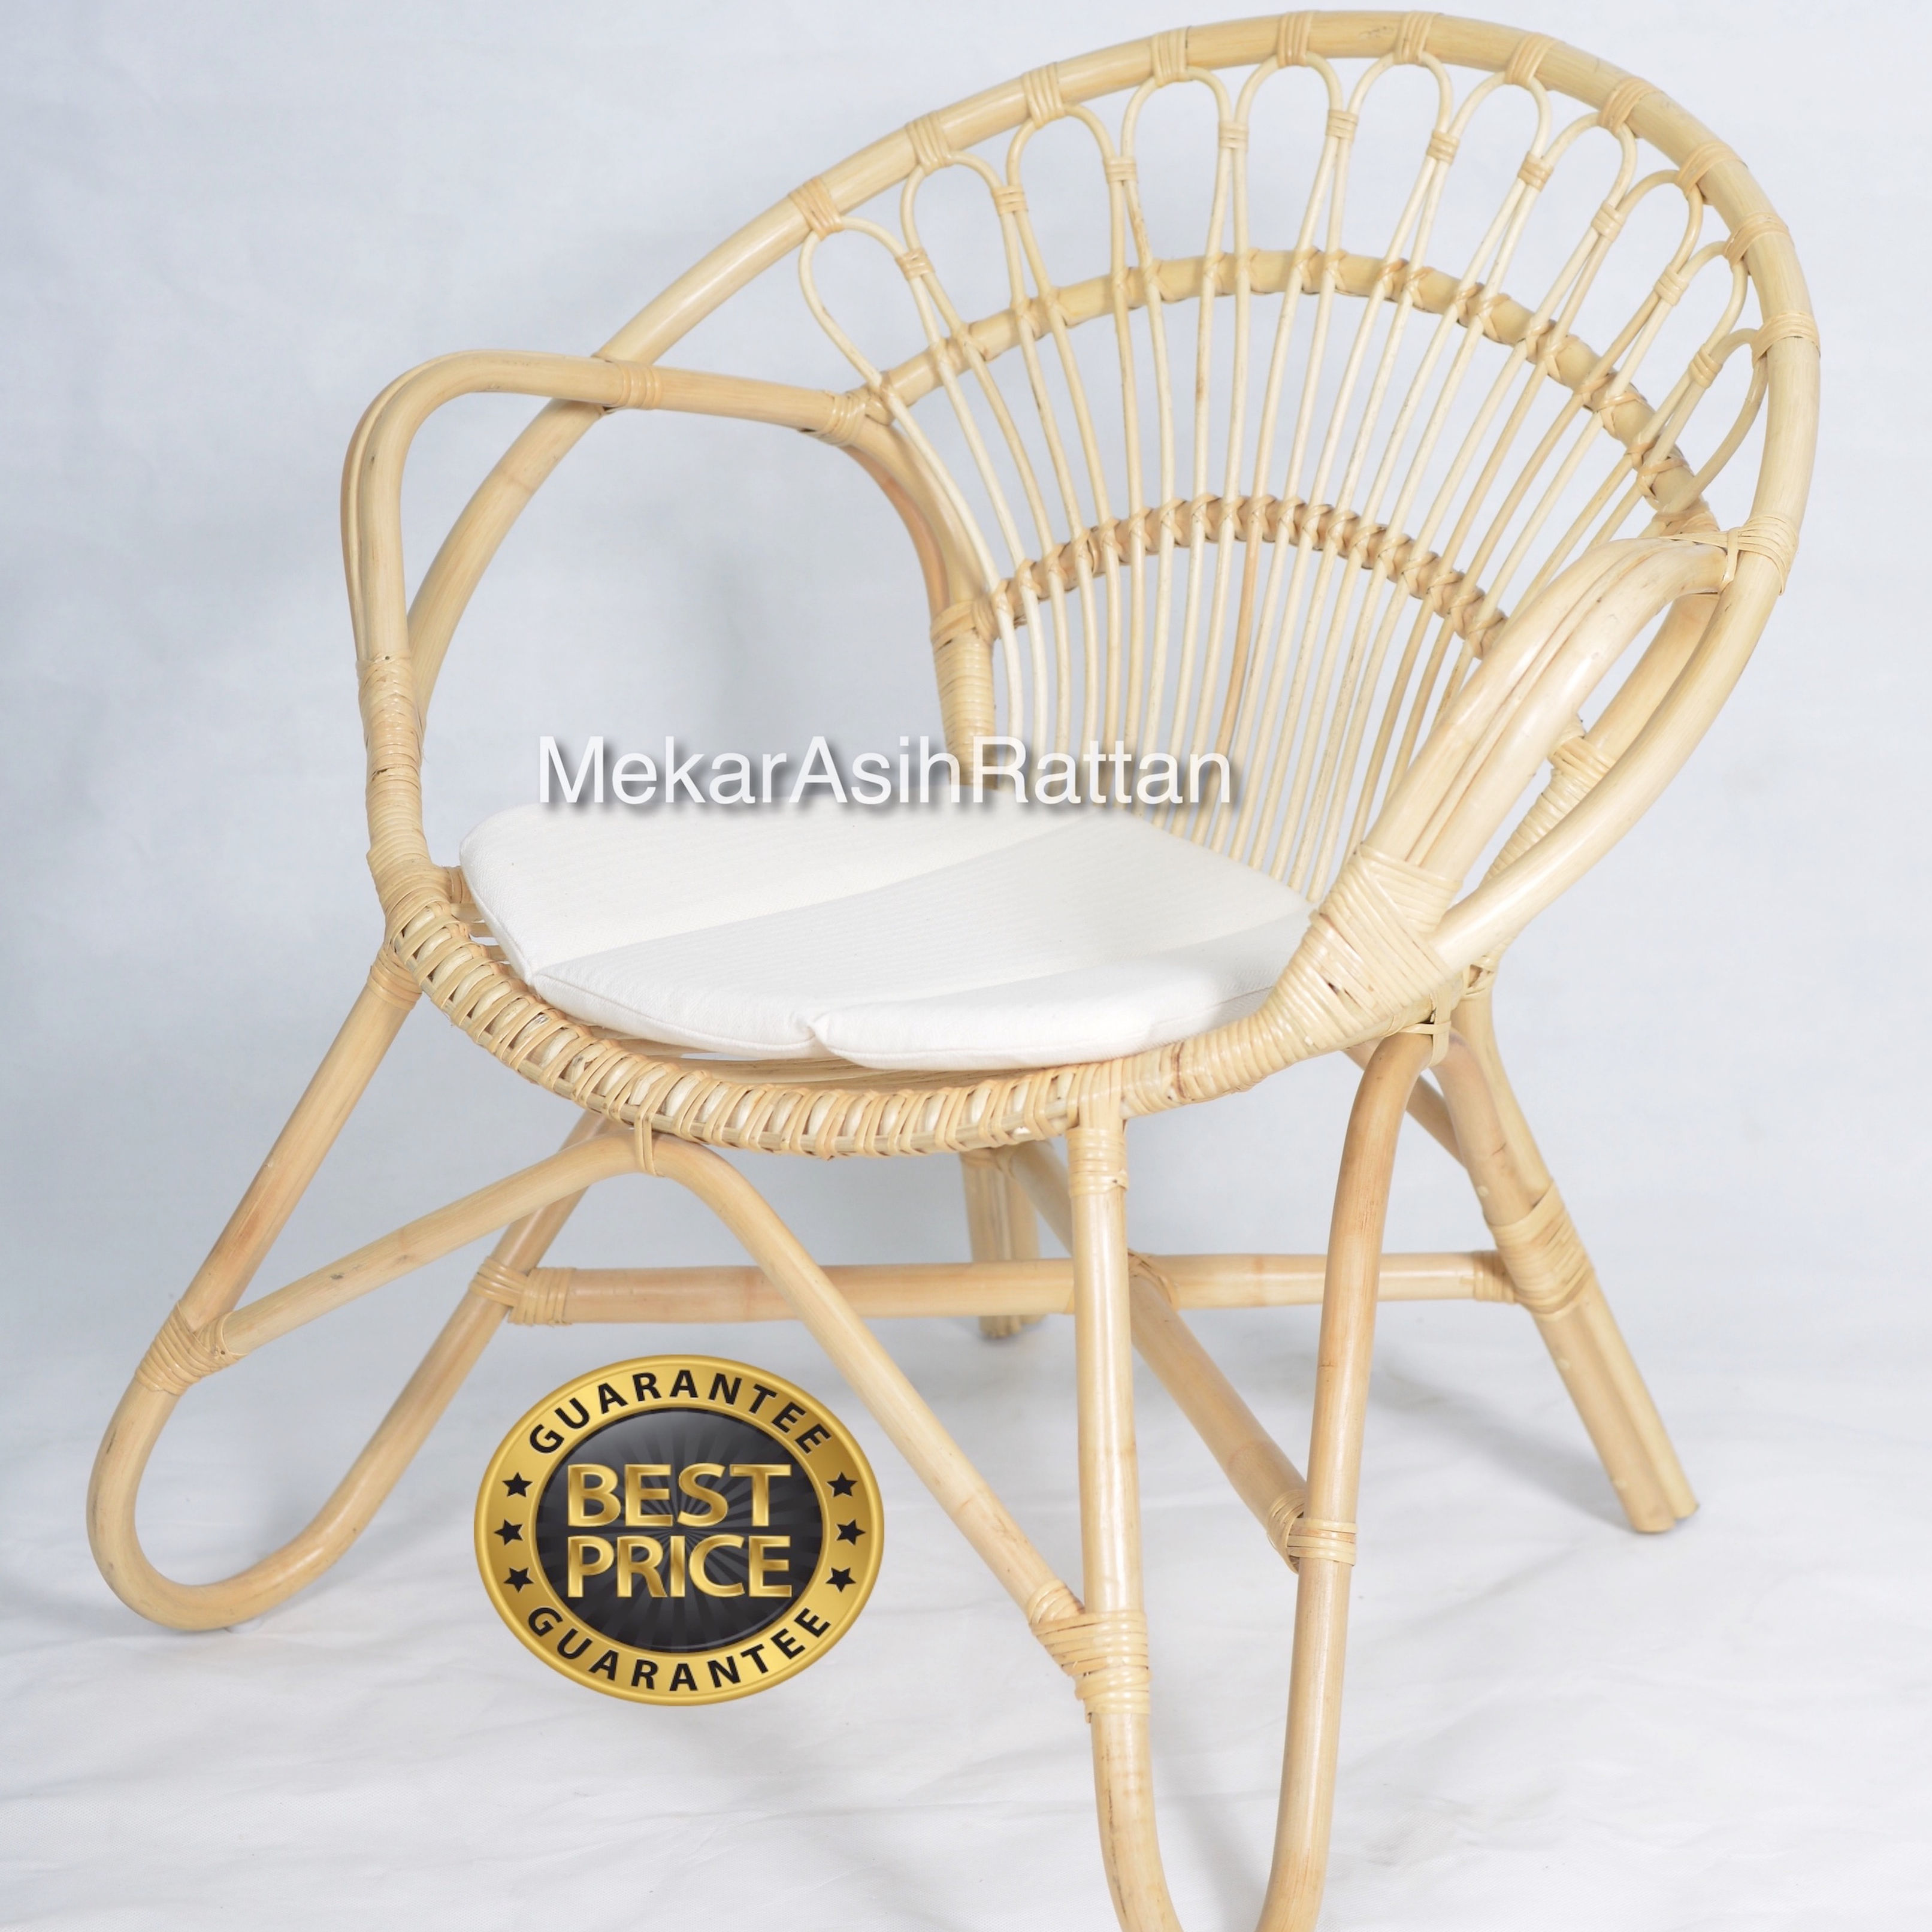 Modern Chair 2019 Style Nature Rattan Handmade Rattan Wood Leisure Chair Trendy Natural Product Wholesale Living Room Furniture